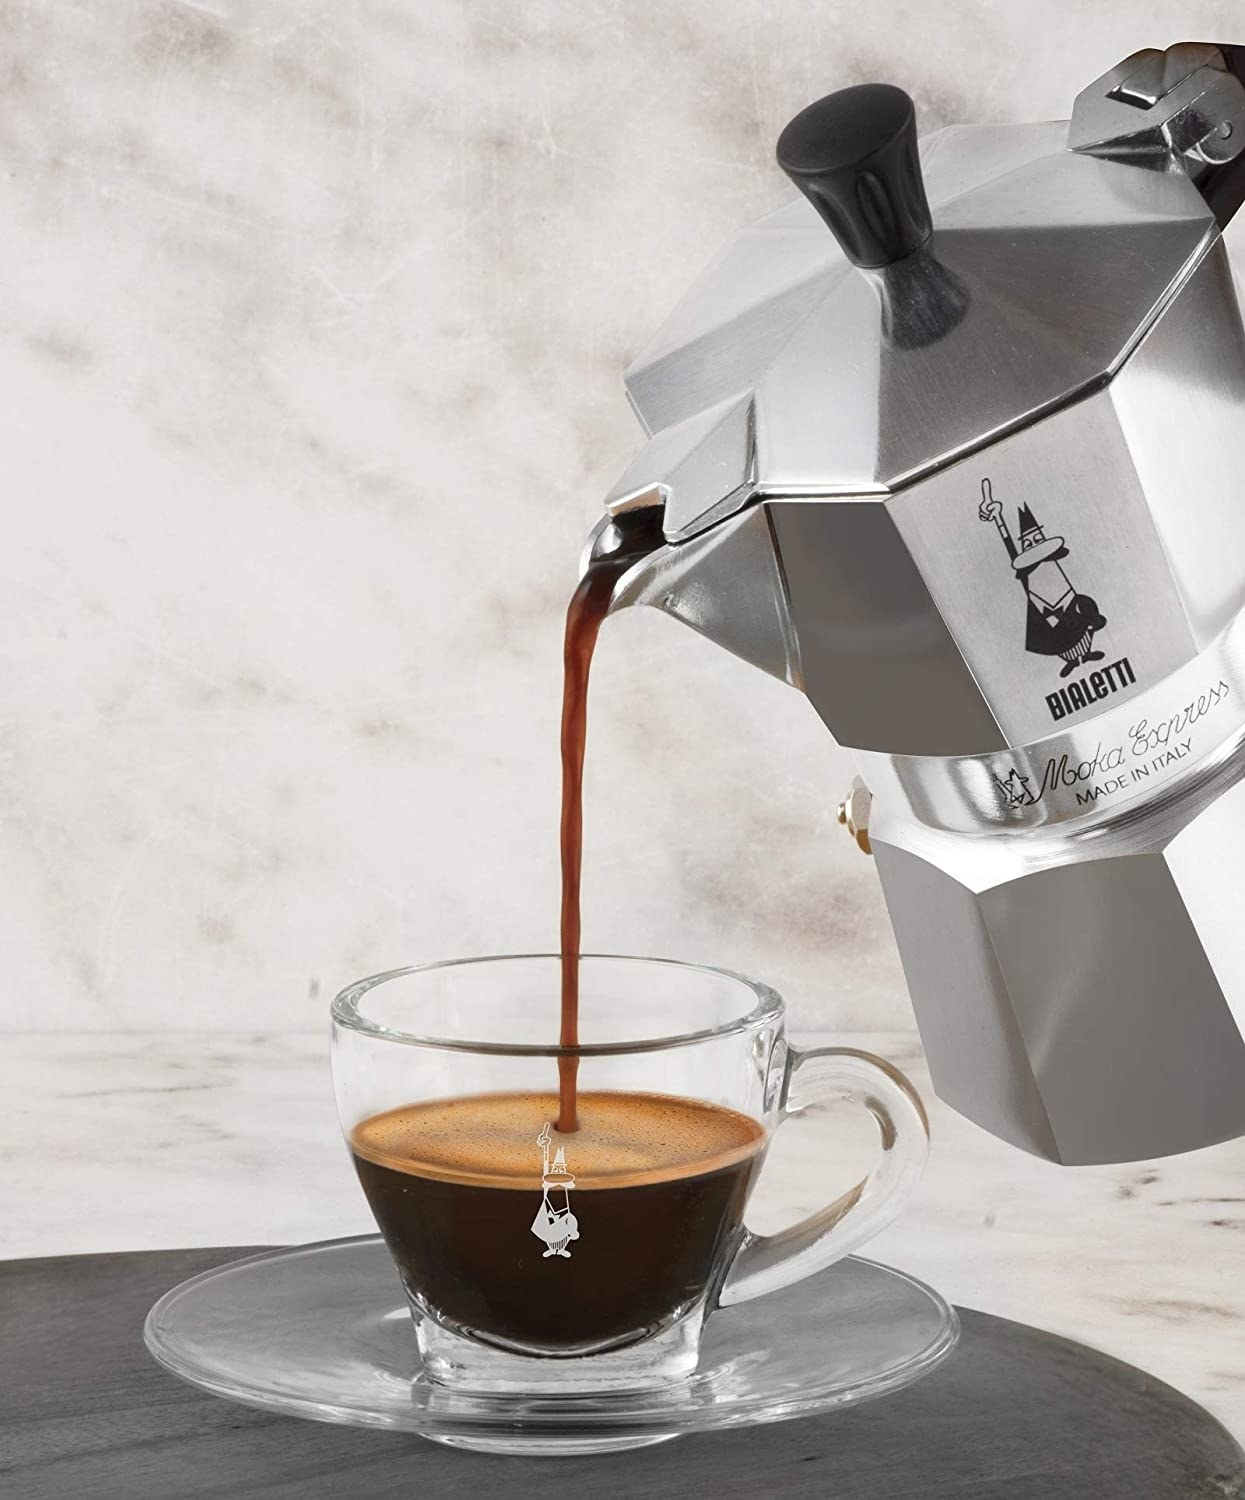 Coffee being poured into a cup from a Bialetti Moka Express Espresso Maker